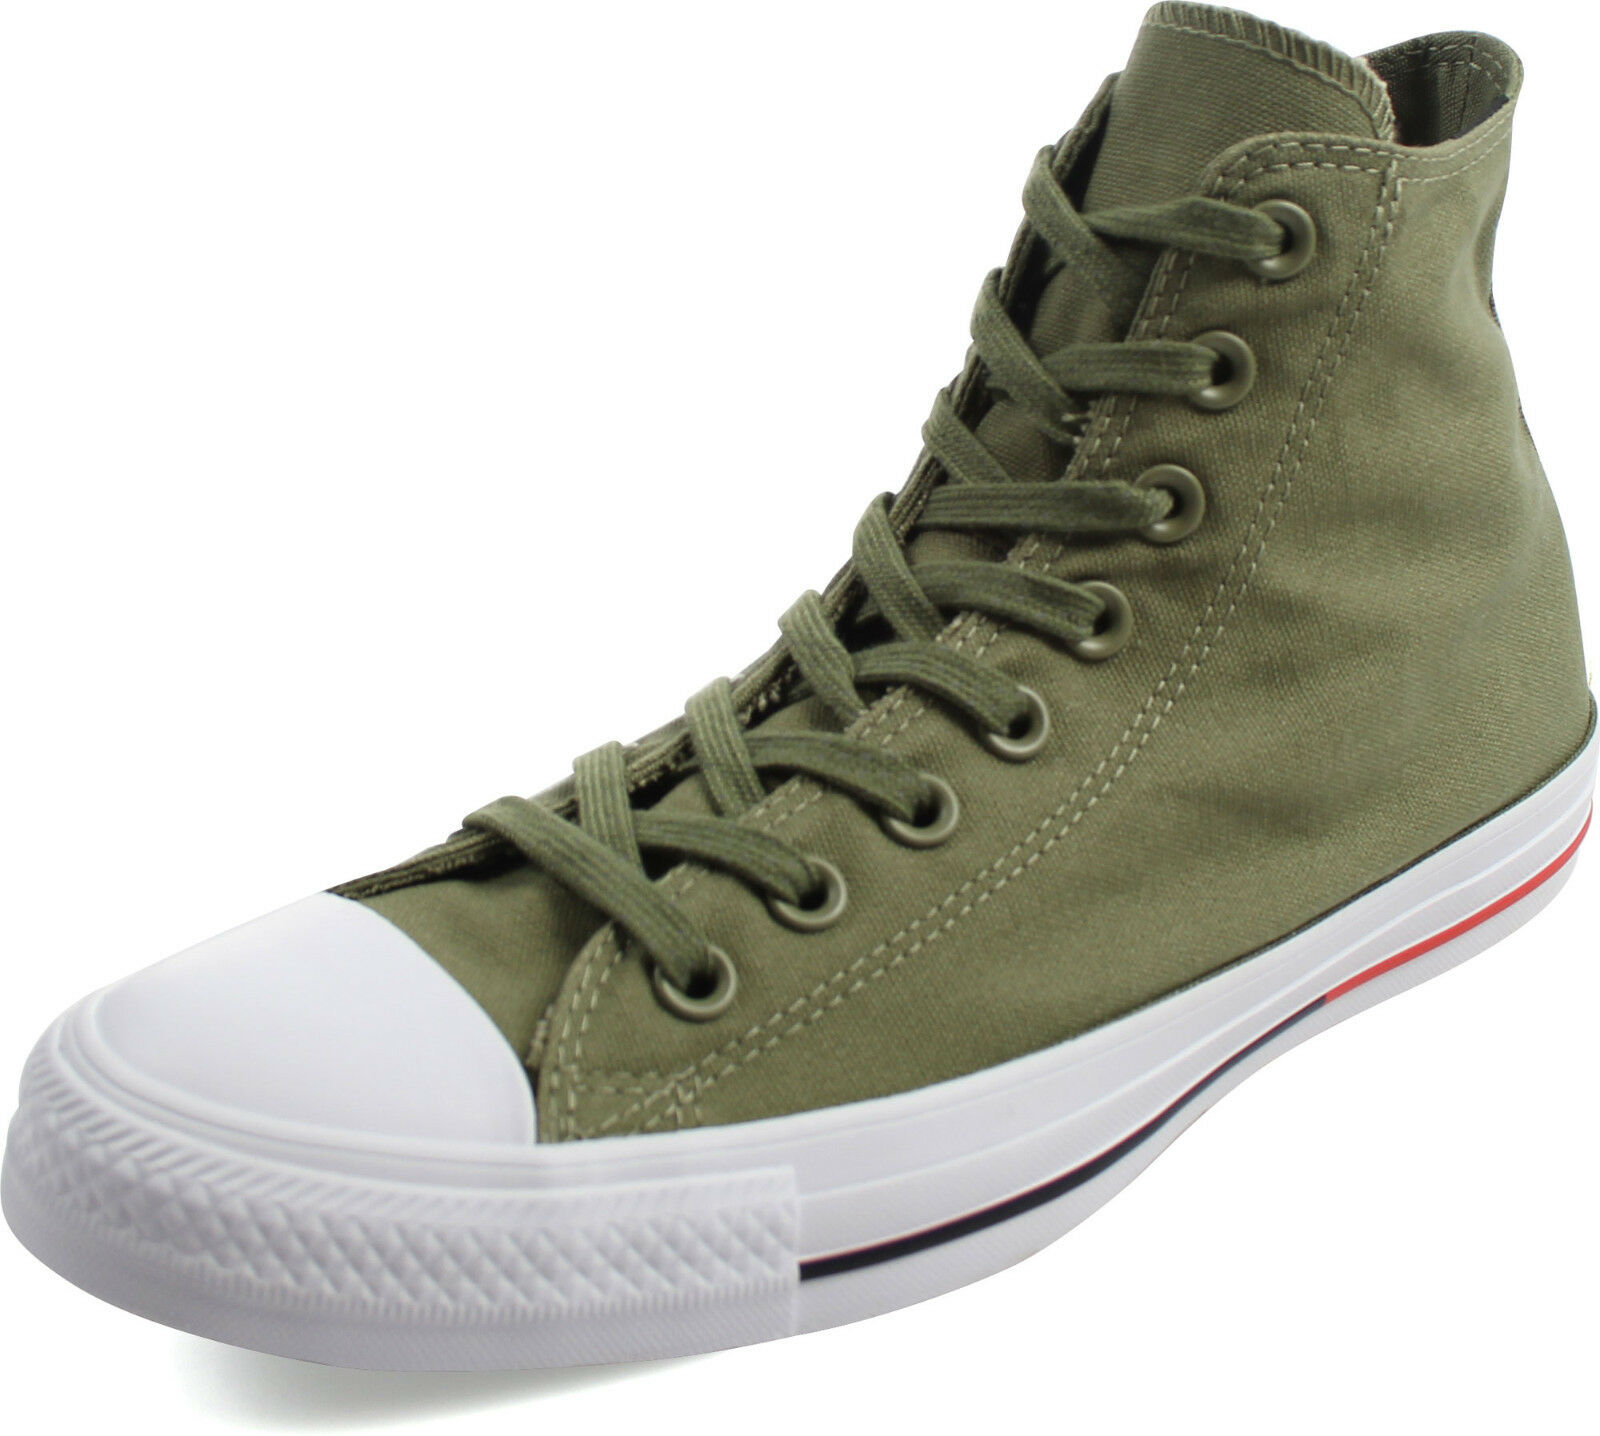 CONVERSE SHIELD HI ALL STAR CHUCK TAYLOR MEN SHOES FATIGUE GREEN 153795F SIZE 10